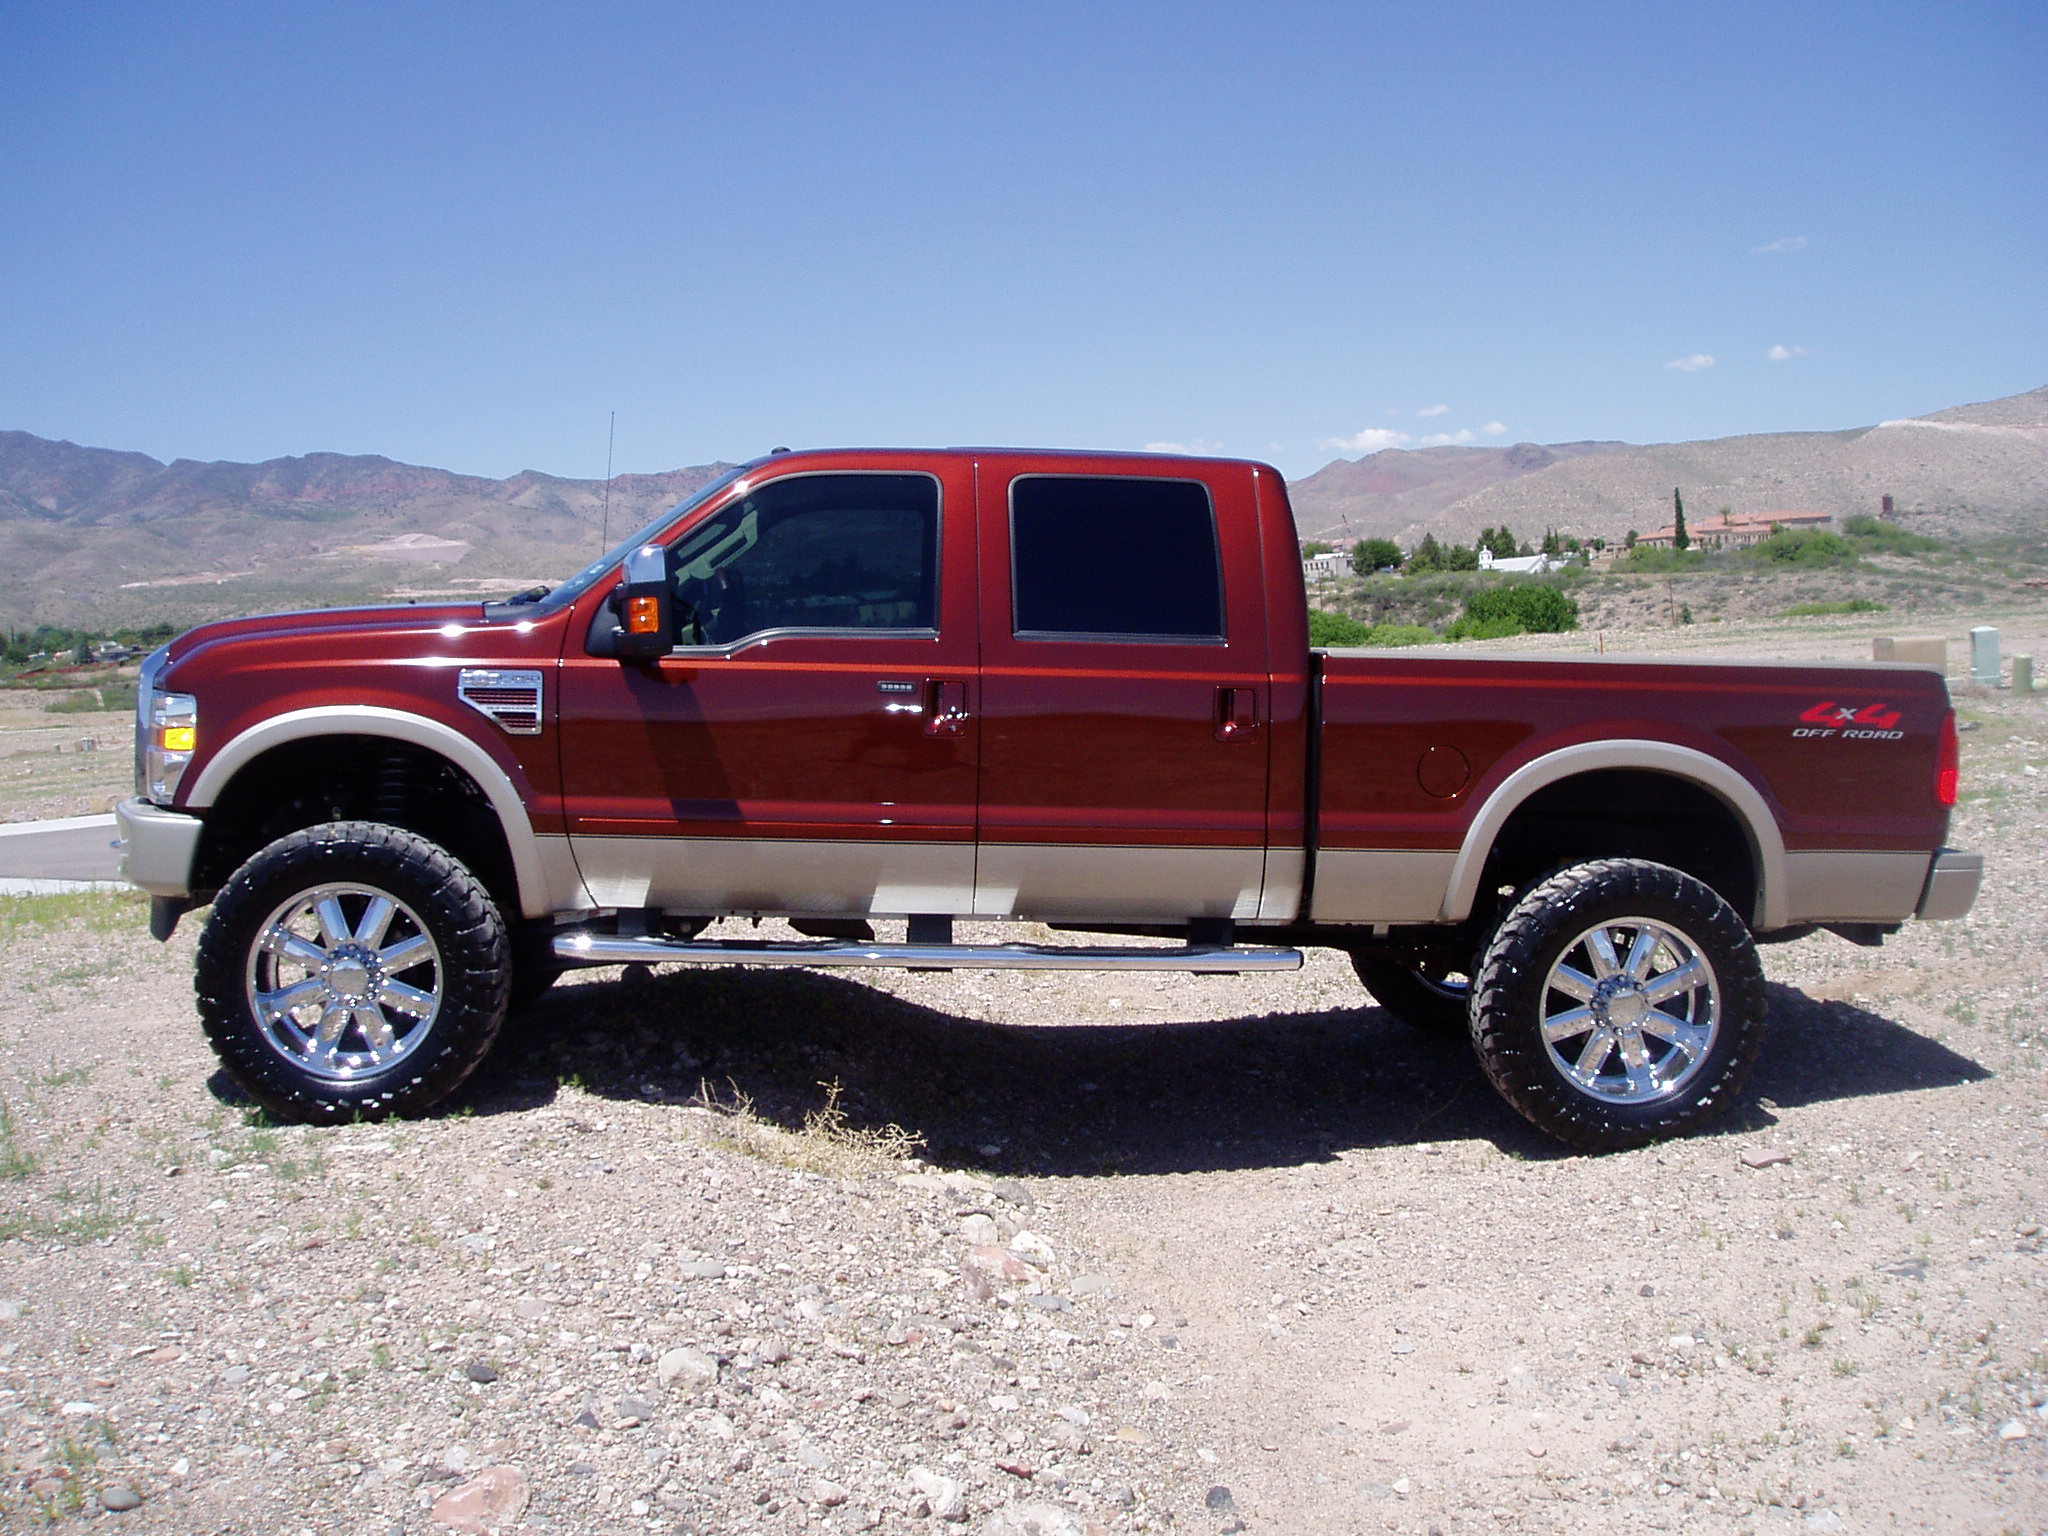 2004 Ford F250 King Ranch ford f 250 lifted source http galleryhip com 2012 f250 lifted white ...